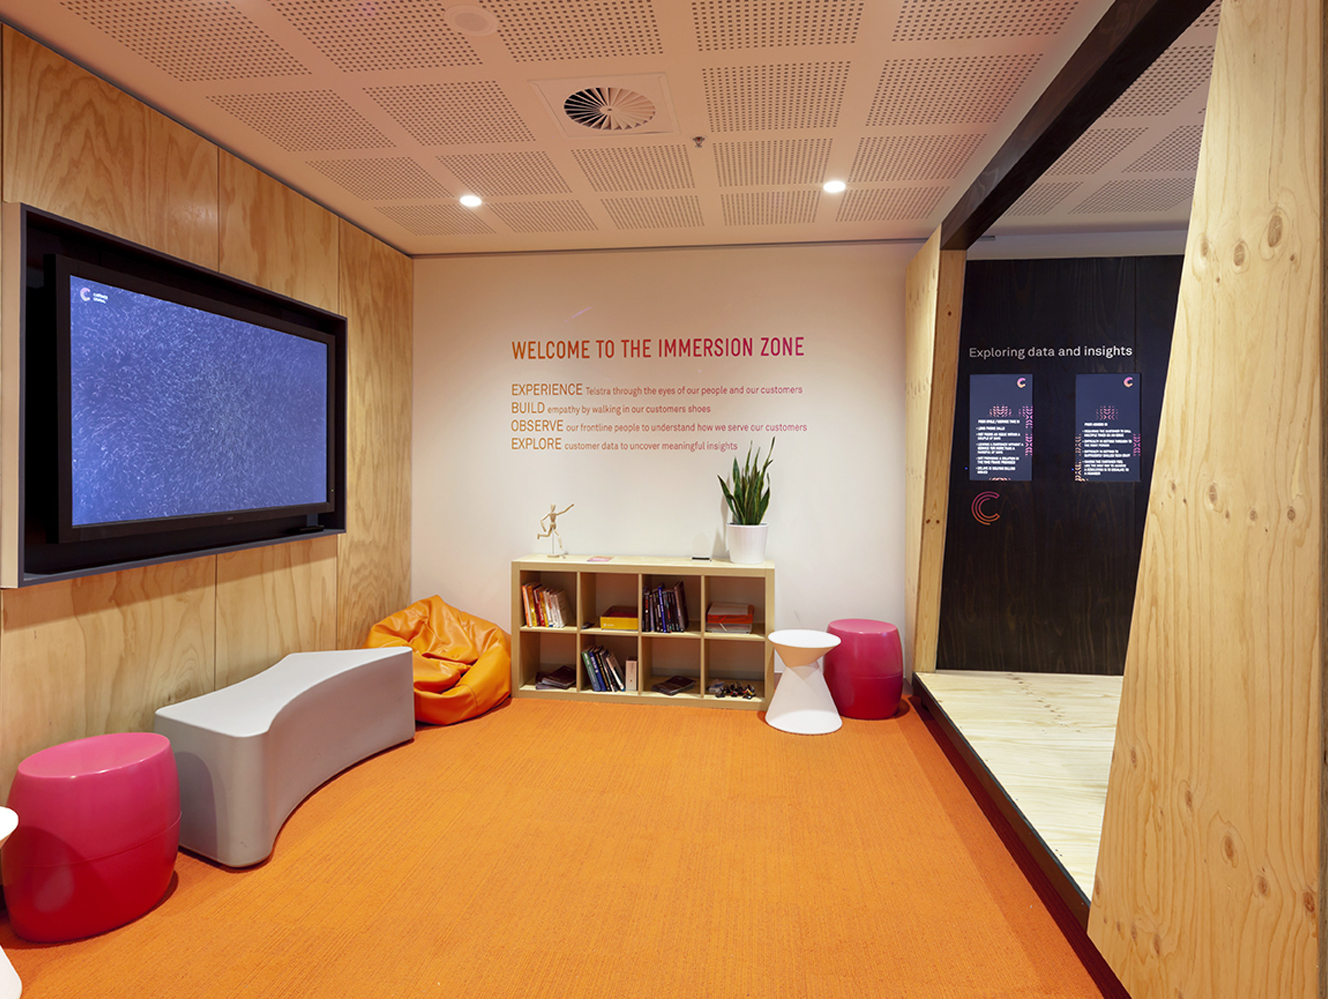 Telstra Customer Central Immersion Zone.jpg